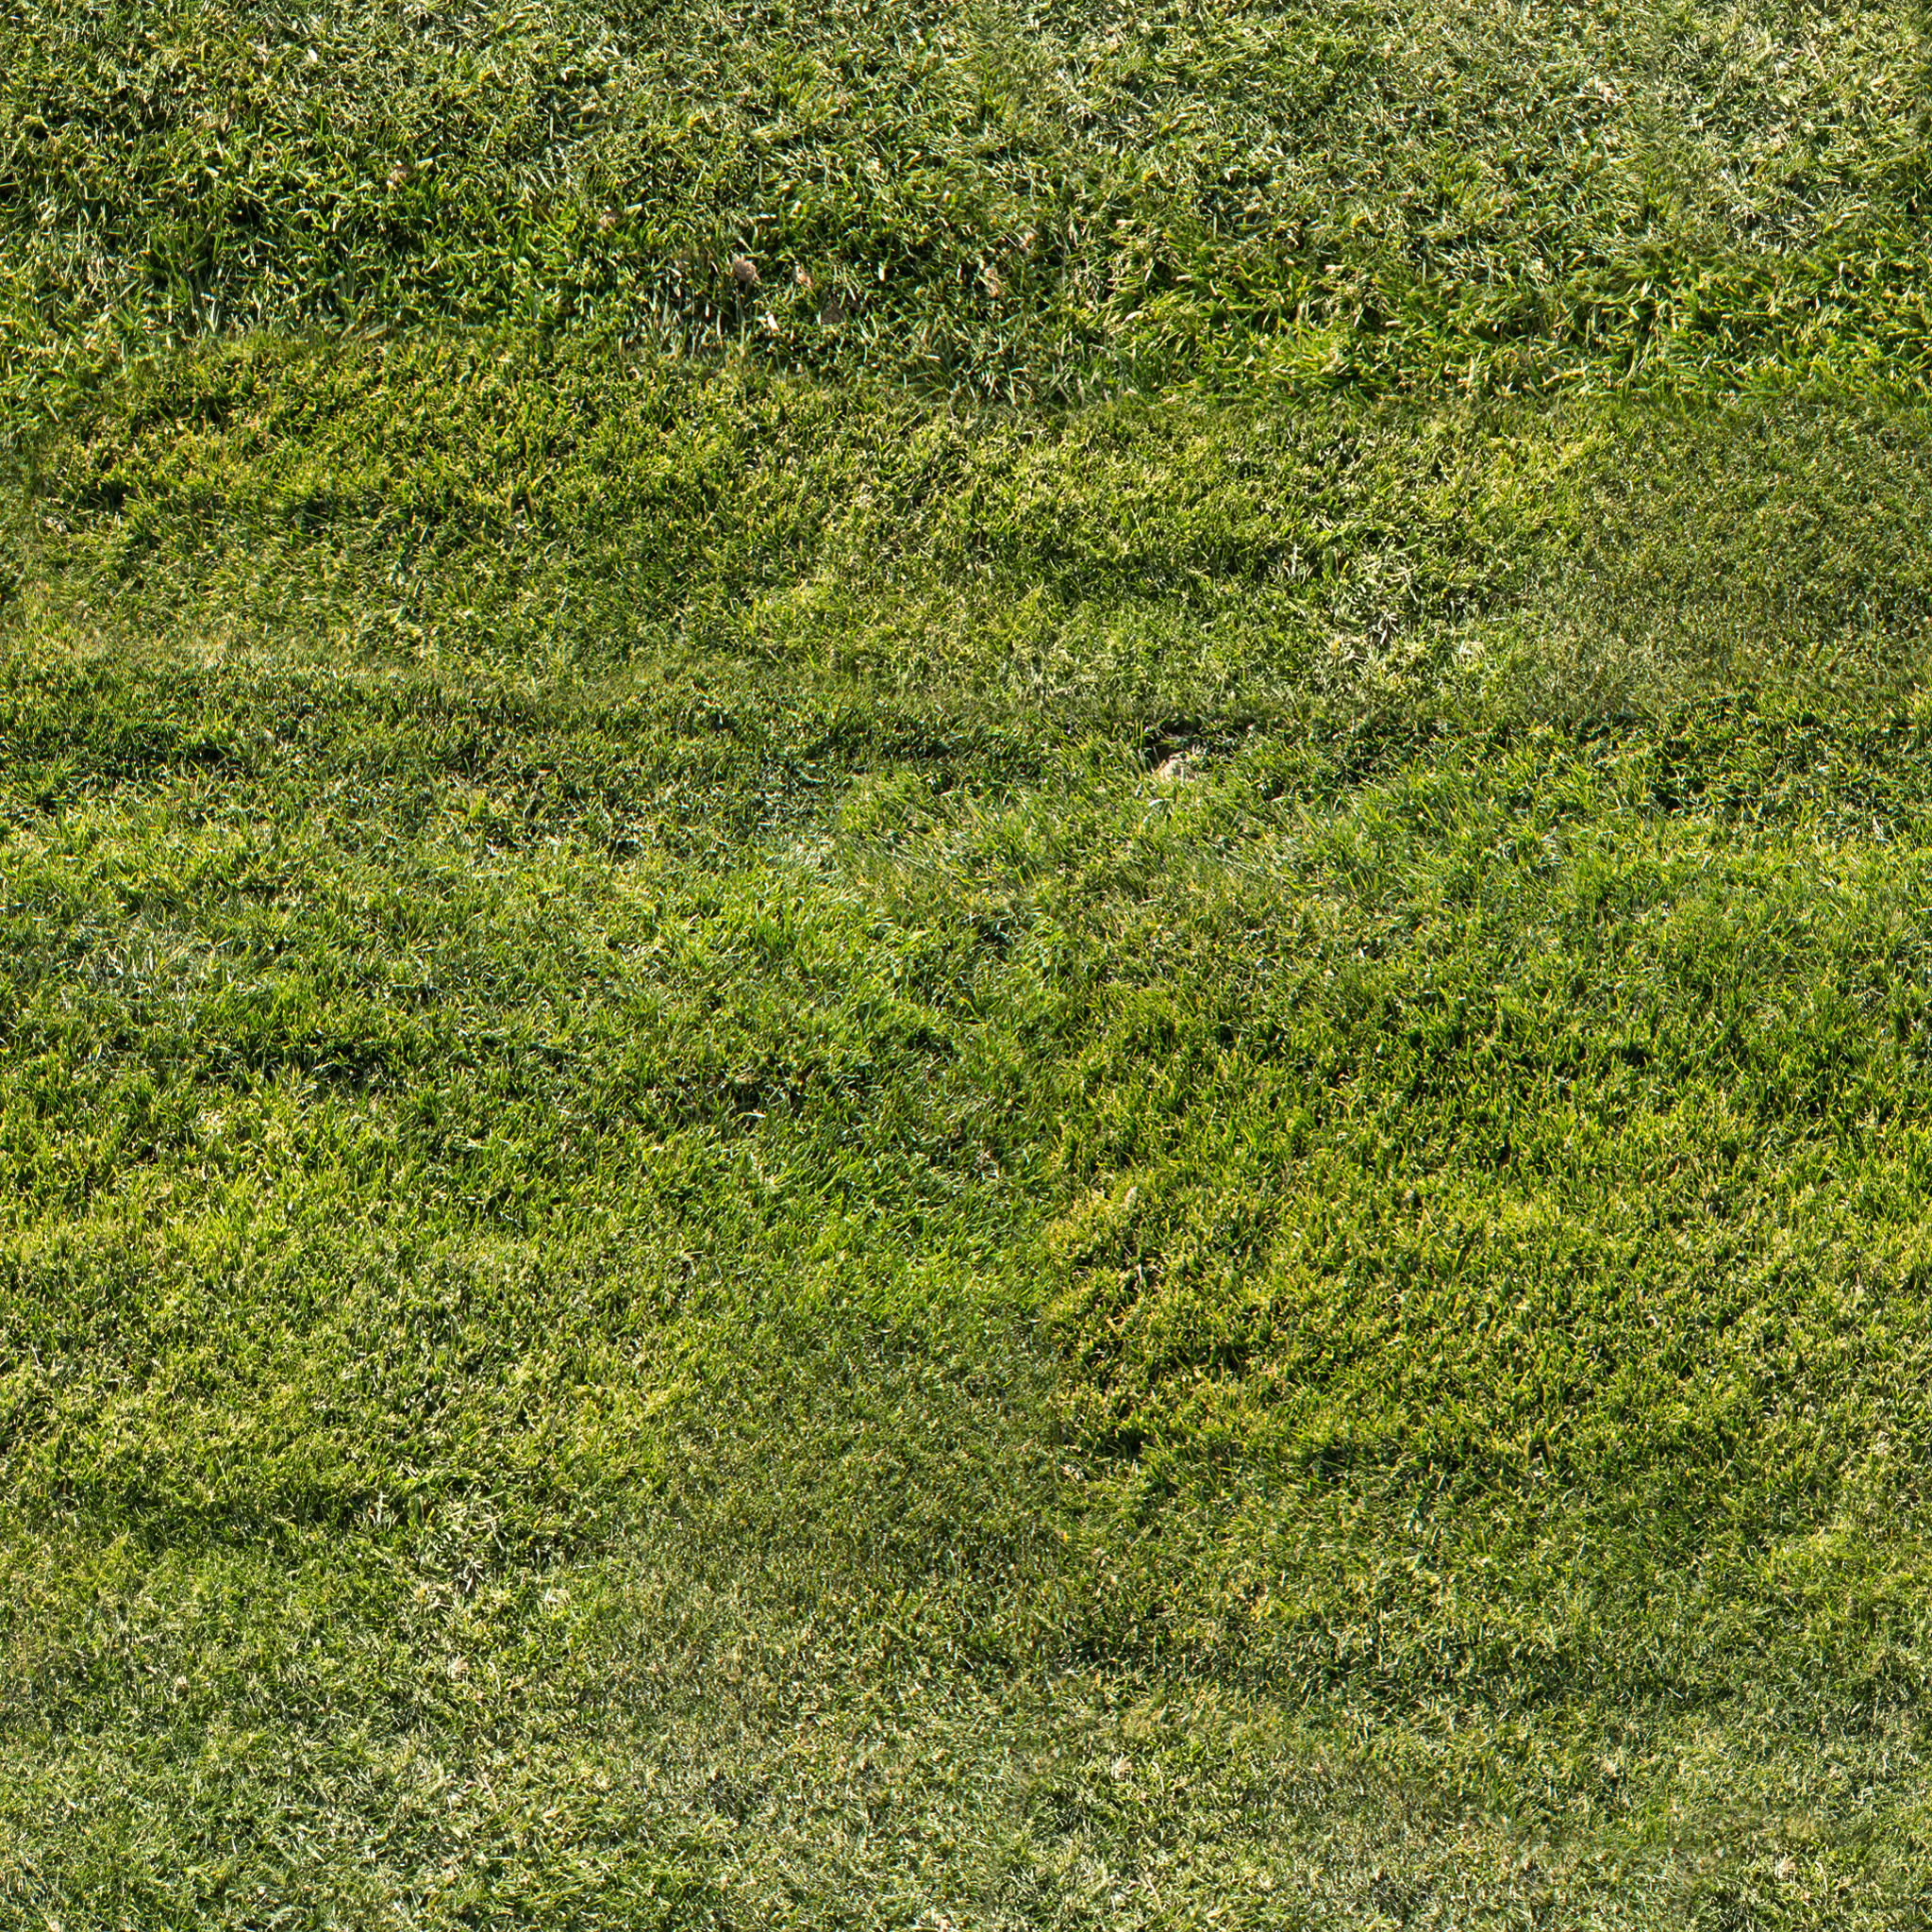 mowed-grass.jpg